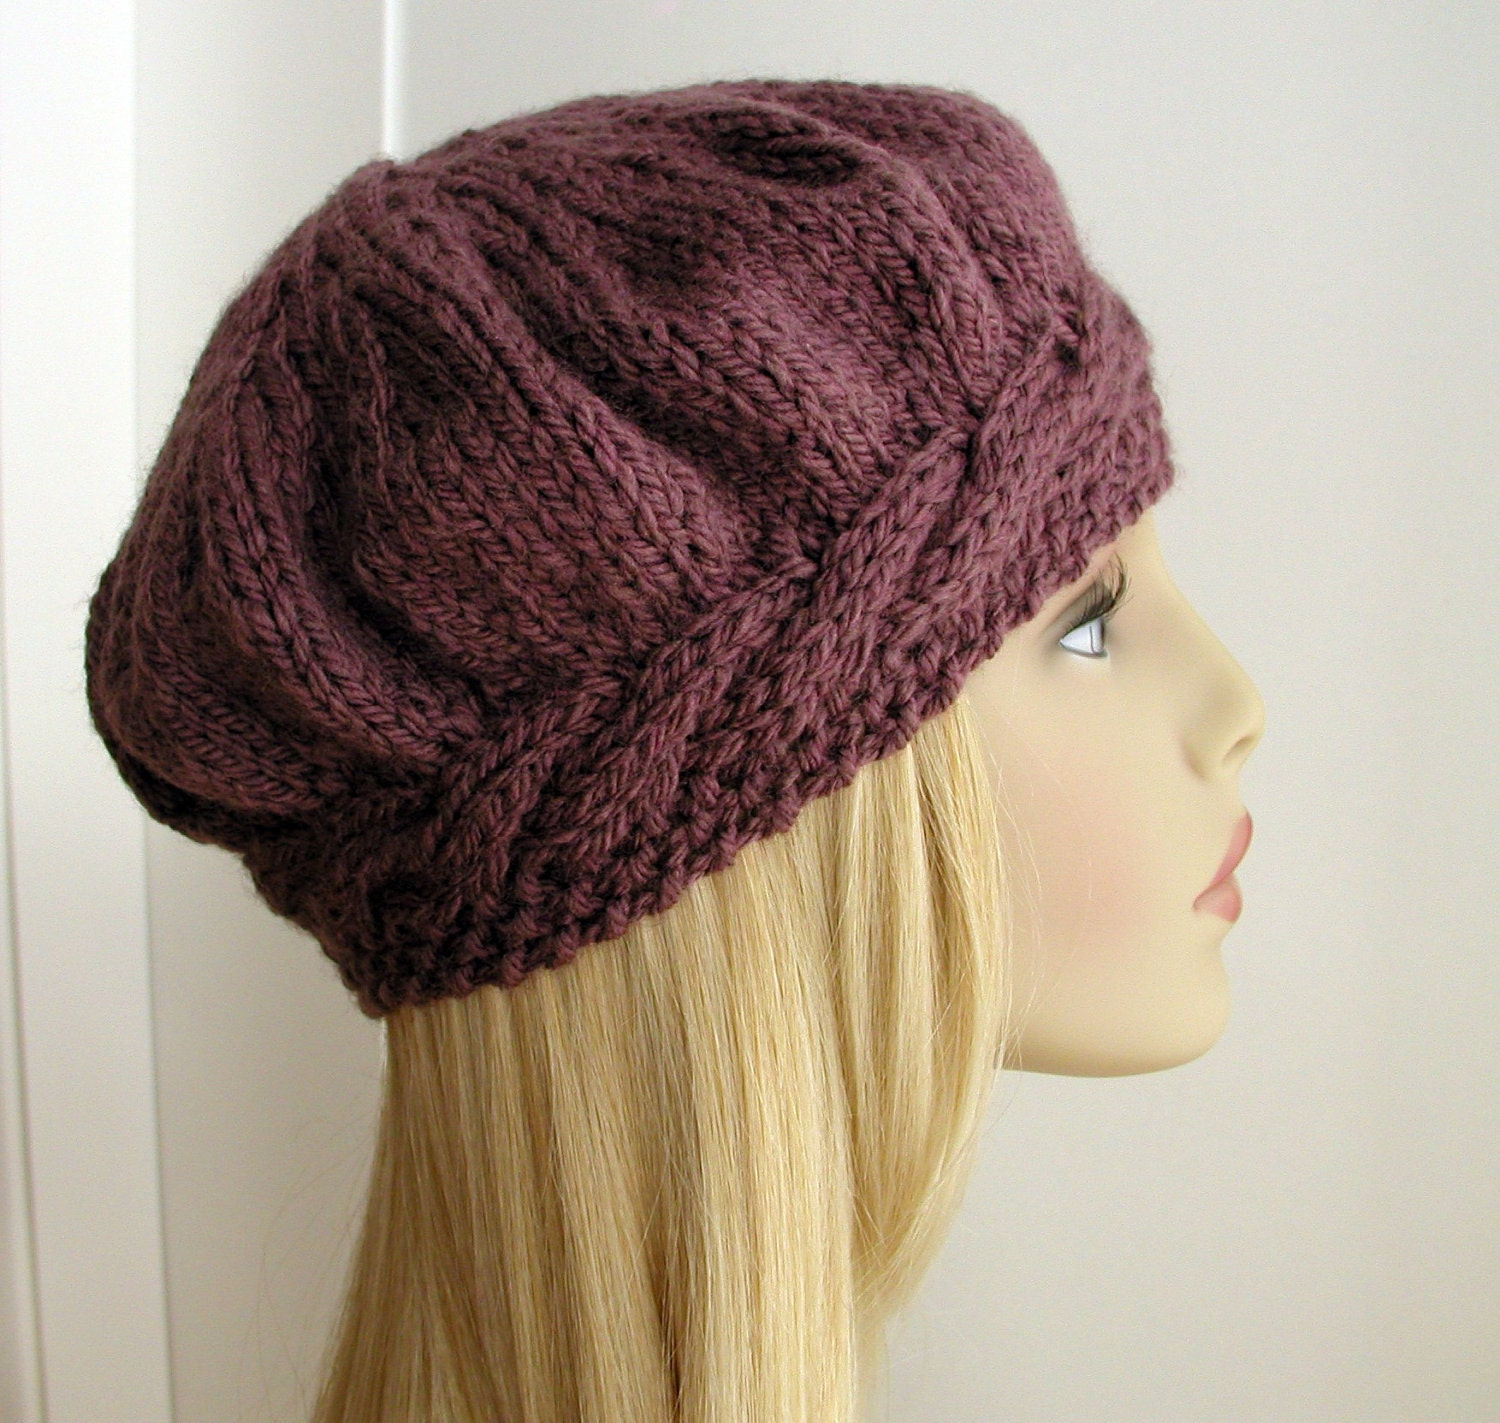 Pattern For Knitting Dishcloth : Weekend Cable Beret Tam Hat Knitting Pattern